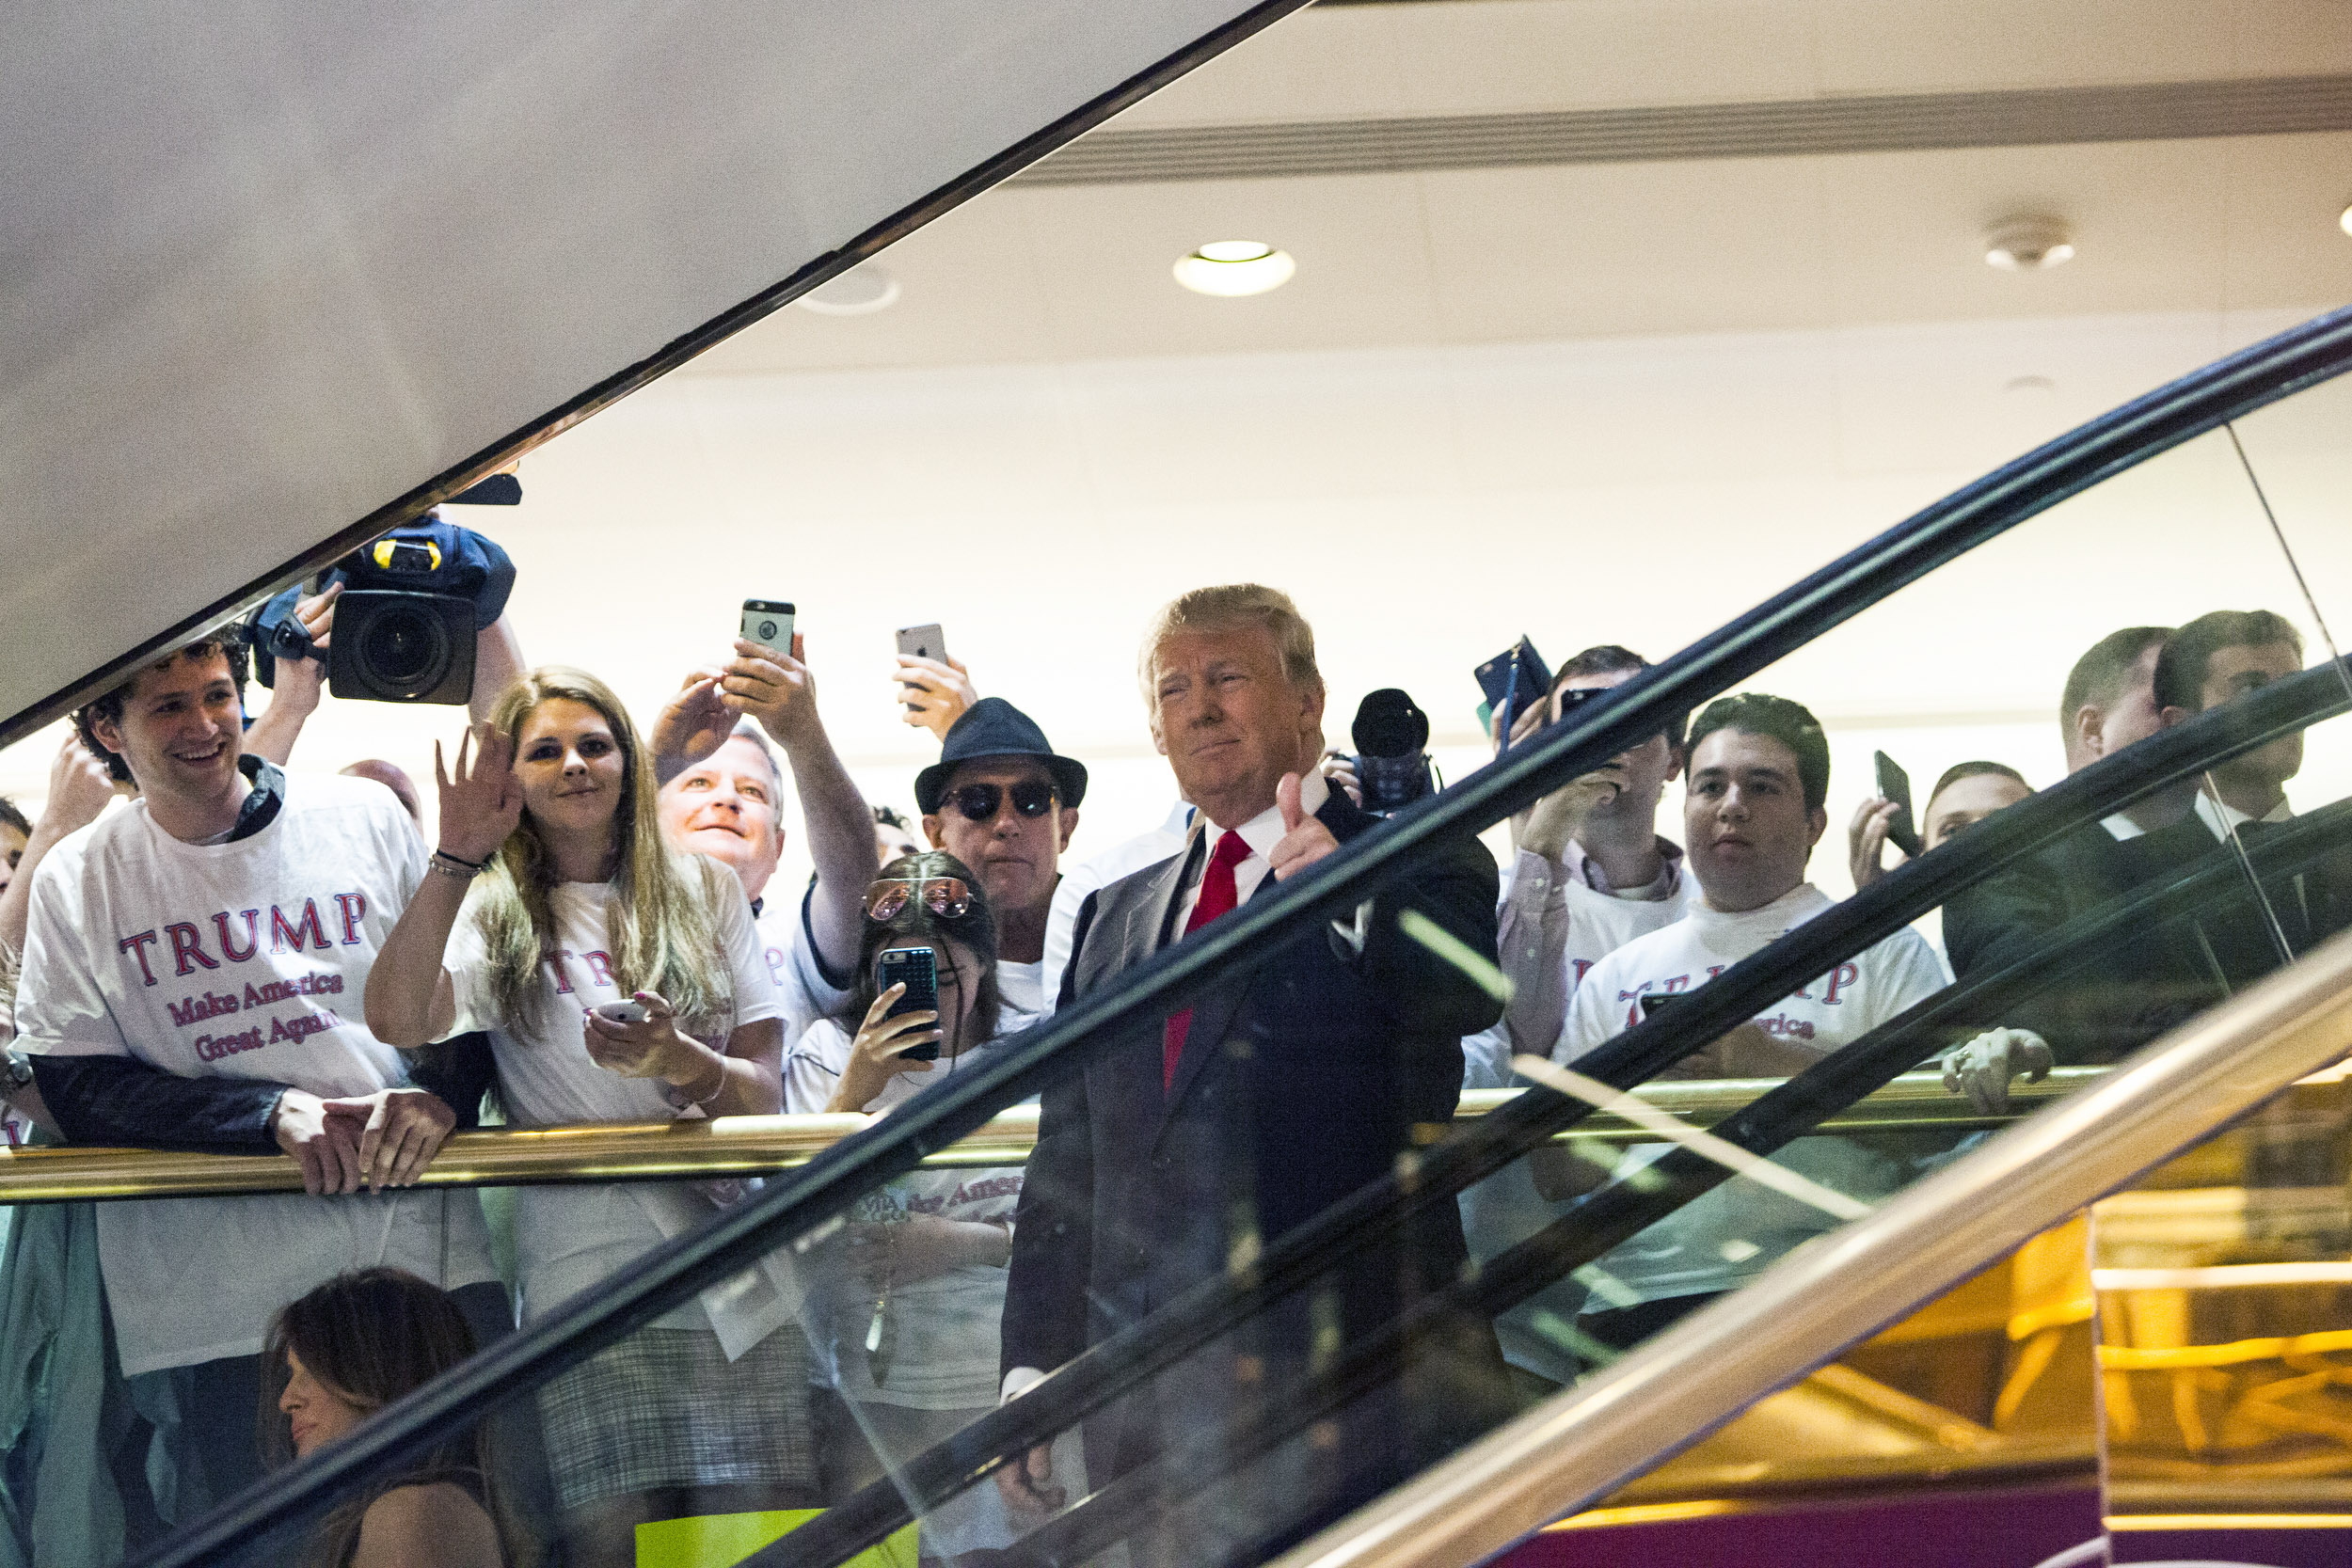 Business mogul Donald Trump rides an escalator to a press event to announce his candidacy for the U.S. presidency at Trump Tower on June 16, 2015 in New York City. (Christopher Gregory/Getty Images)